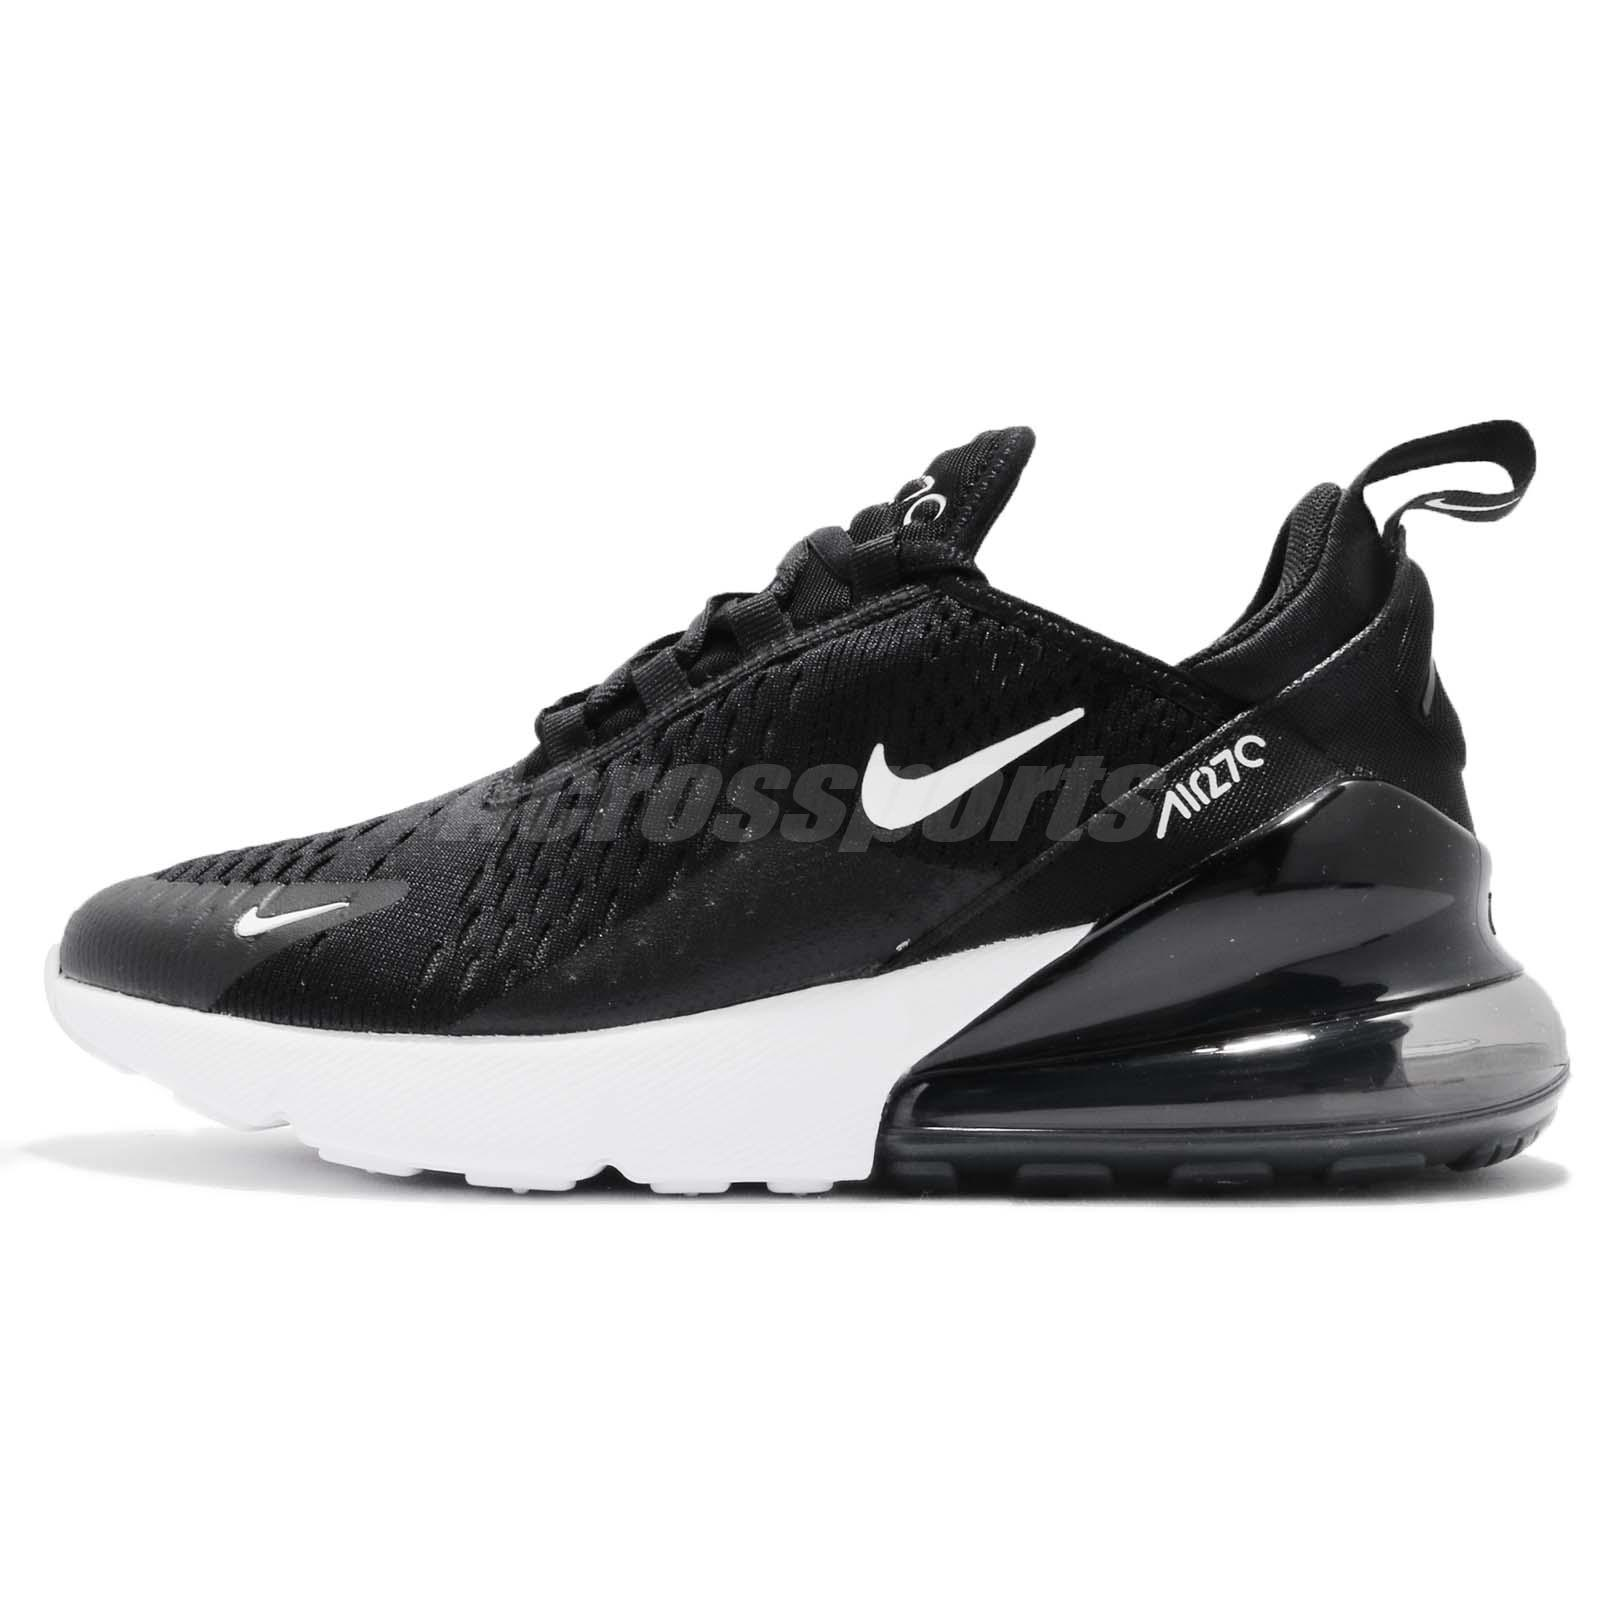 Nike Wmns Air Max 270 Black Anthracite White Women Running Shoes AH6789-001 111f8678f5f